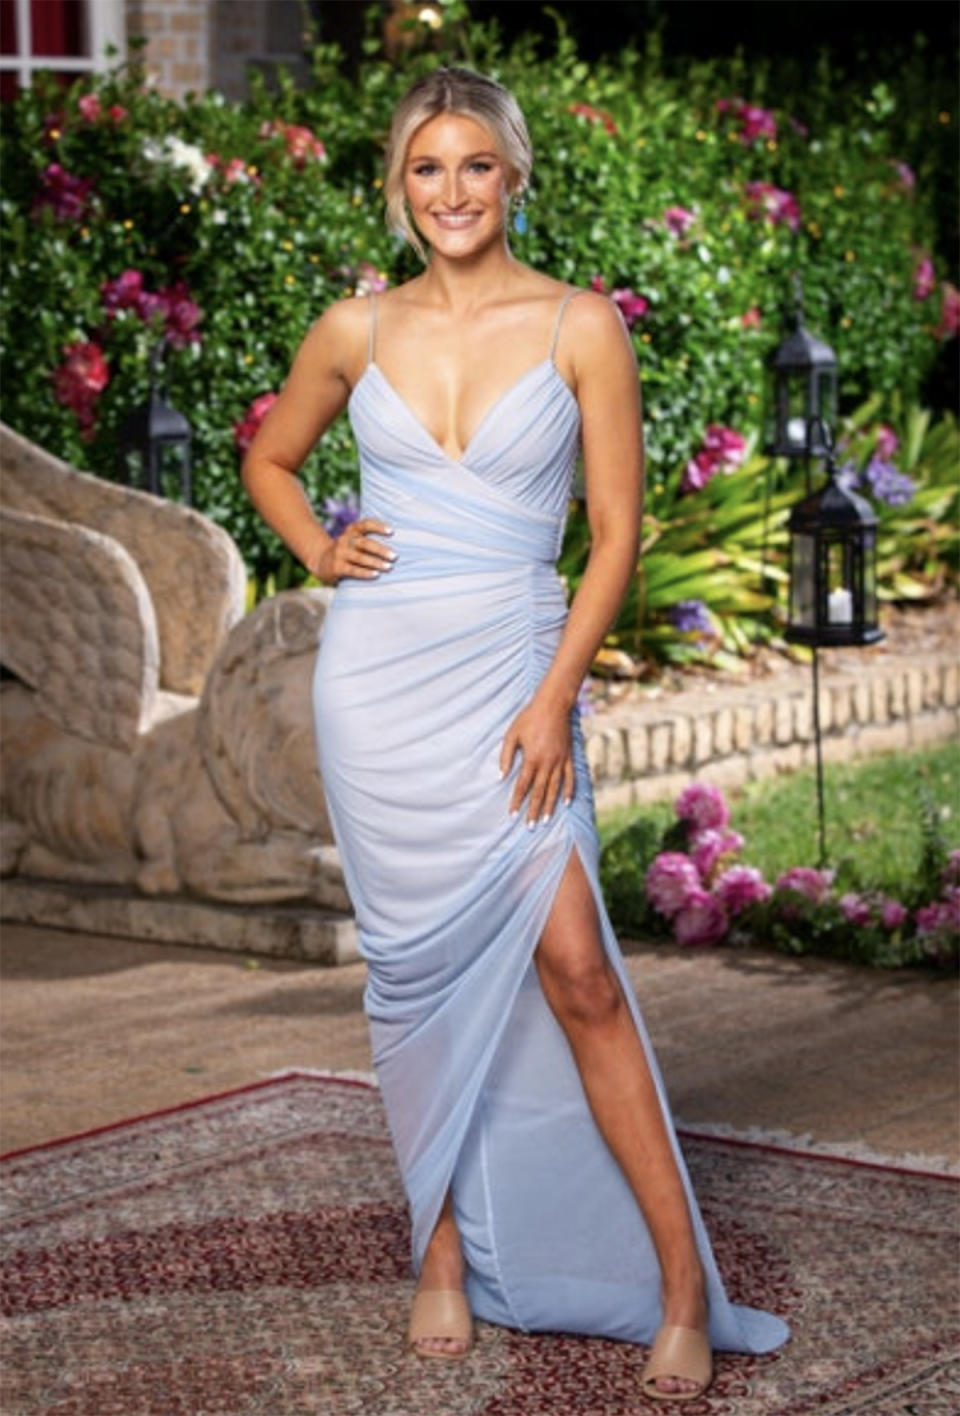 Bachelor star Lily Price wearing the 'Moscow' gown by Nookie at the cocktail party in episode two. Photo: Channel 10.